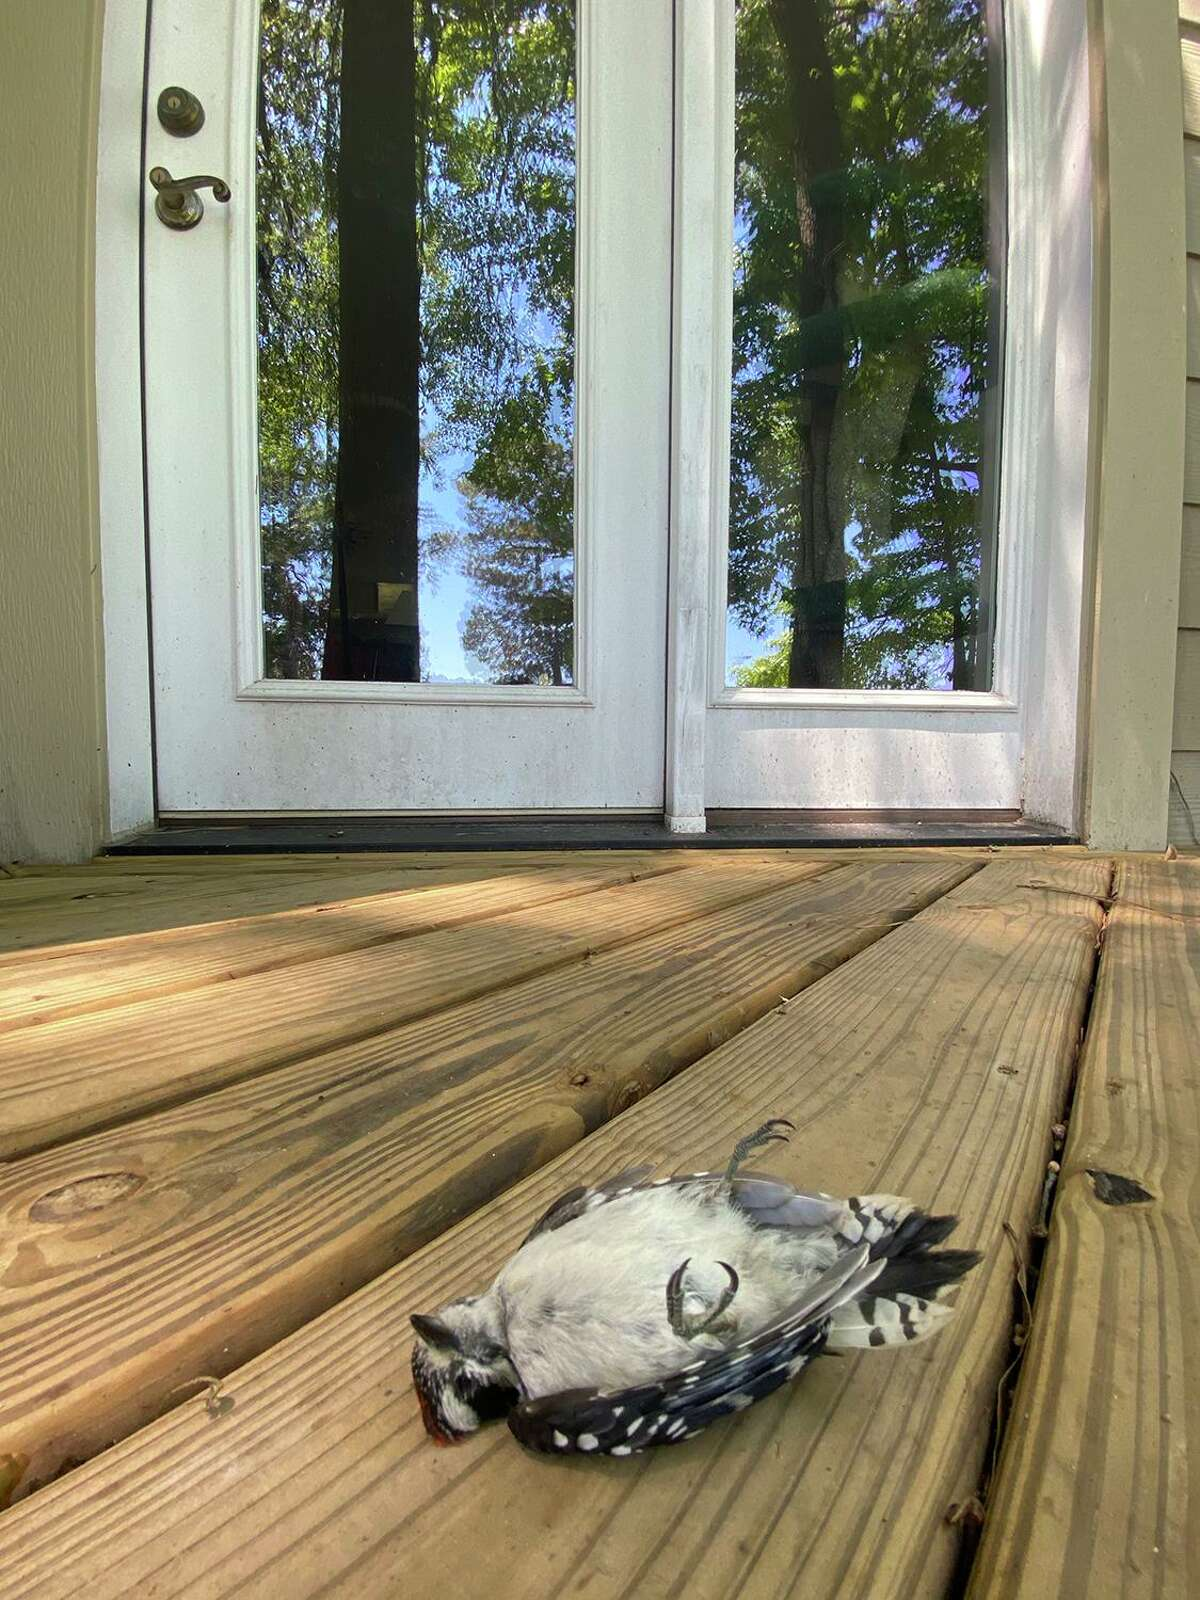 Songbirds can't tell the difference between a mirror image of the forest and the real thing. This downy woodpecker was killed when it flew into the French doors.